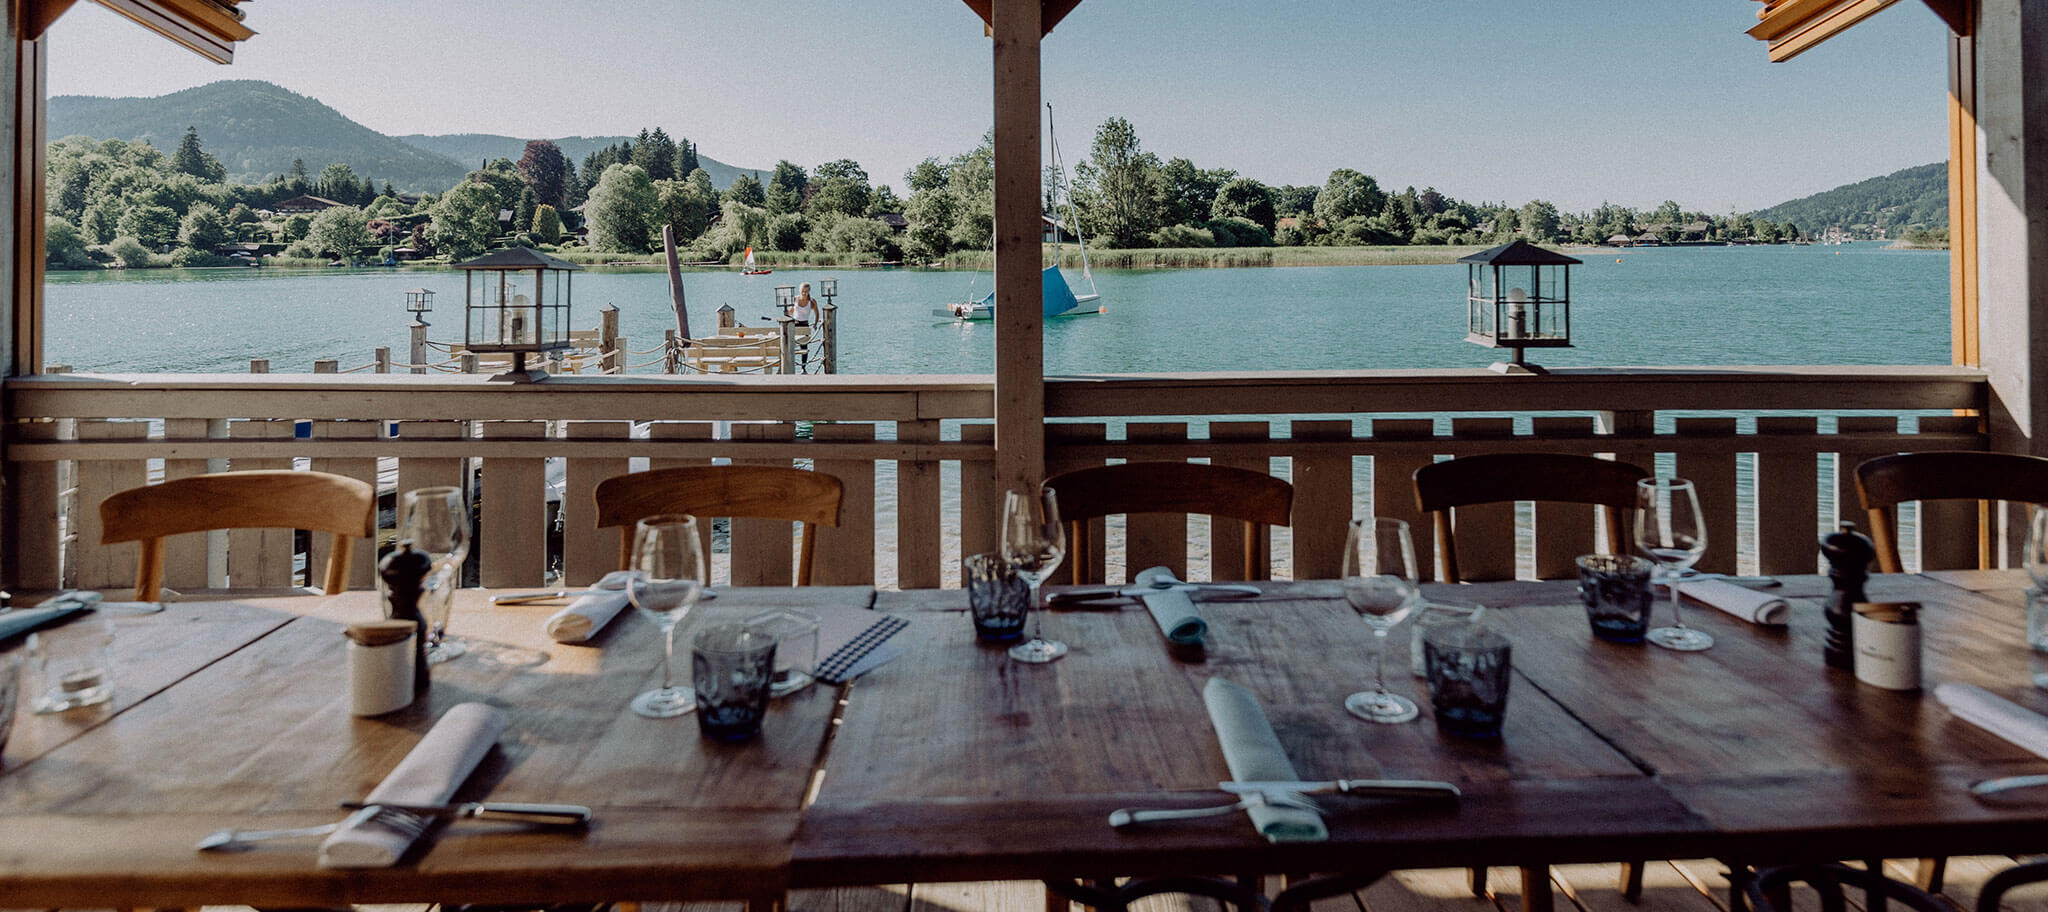 Dinner Location bei Incentive am Tegernsee